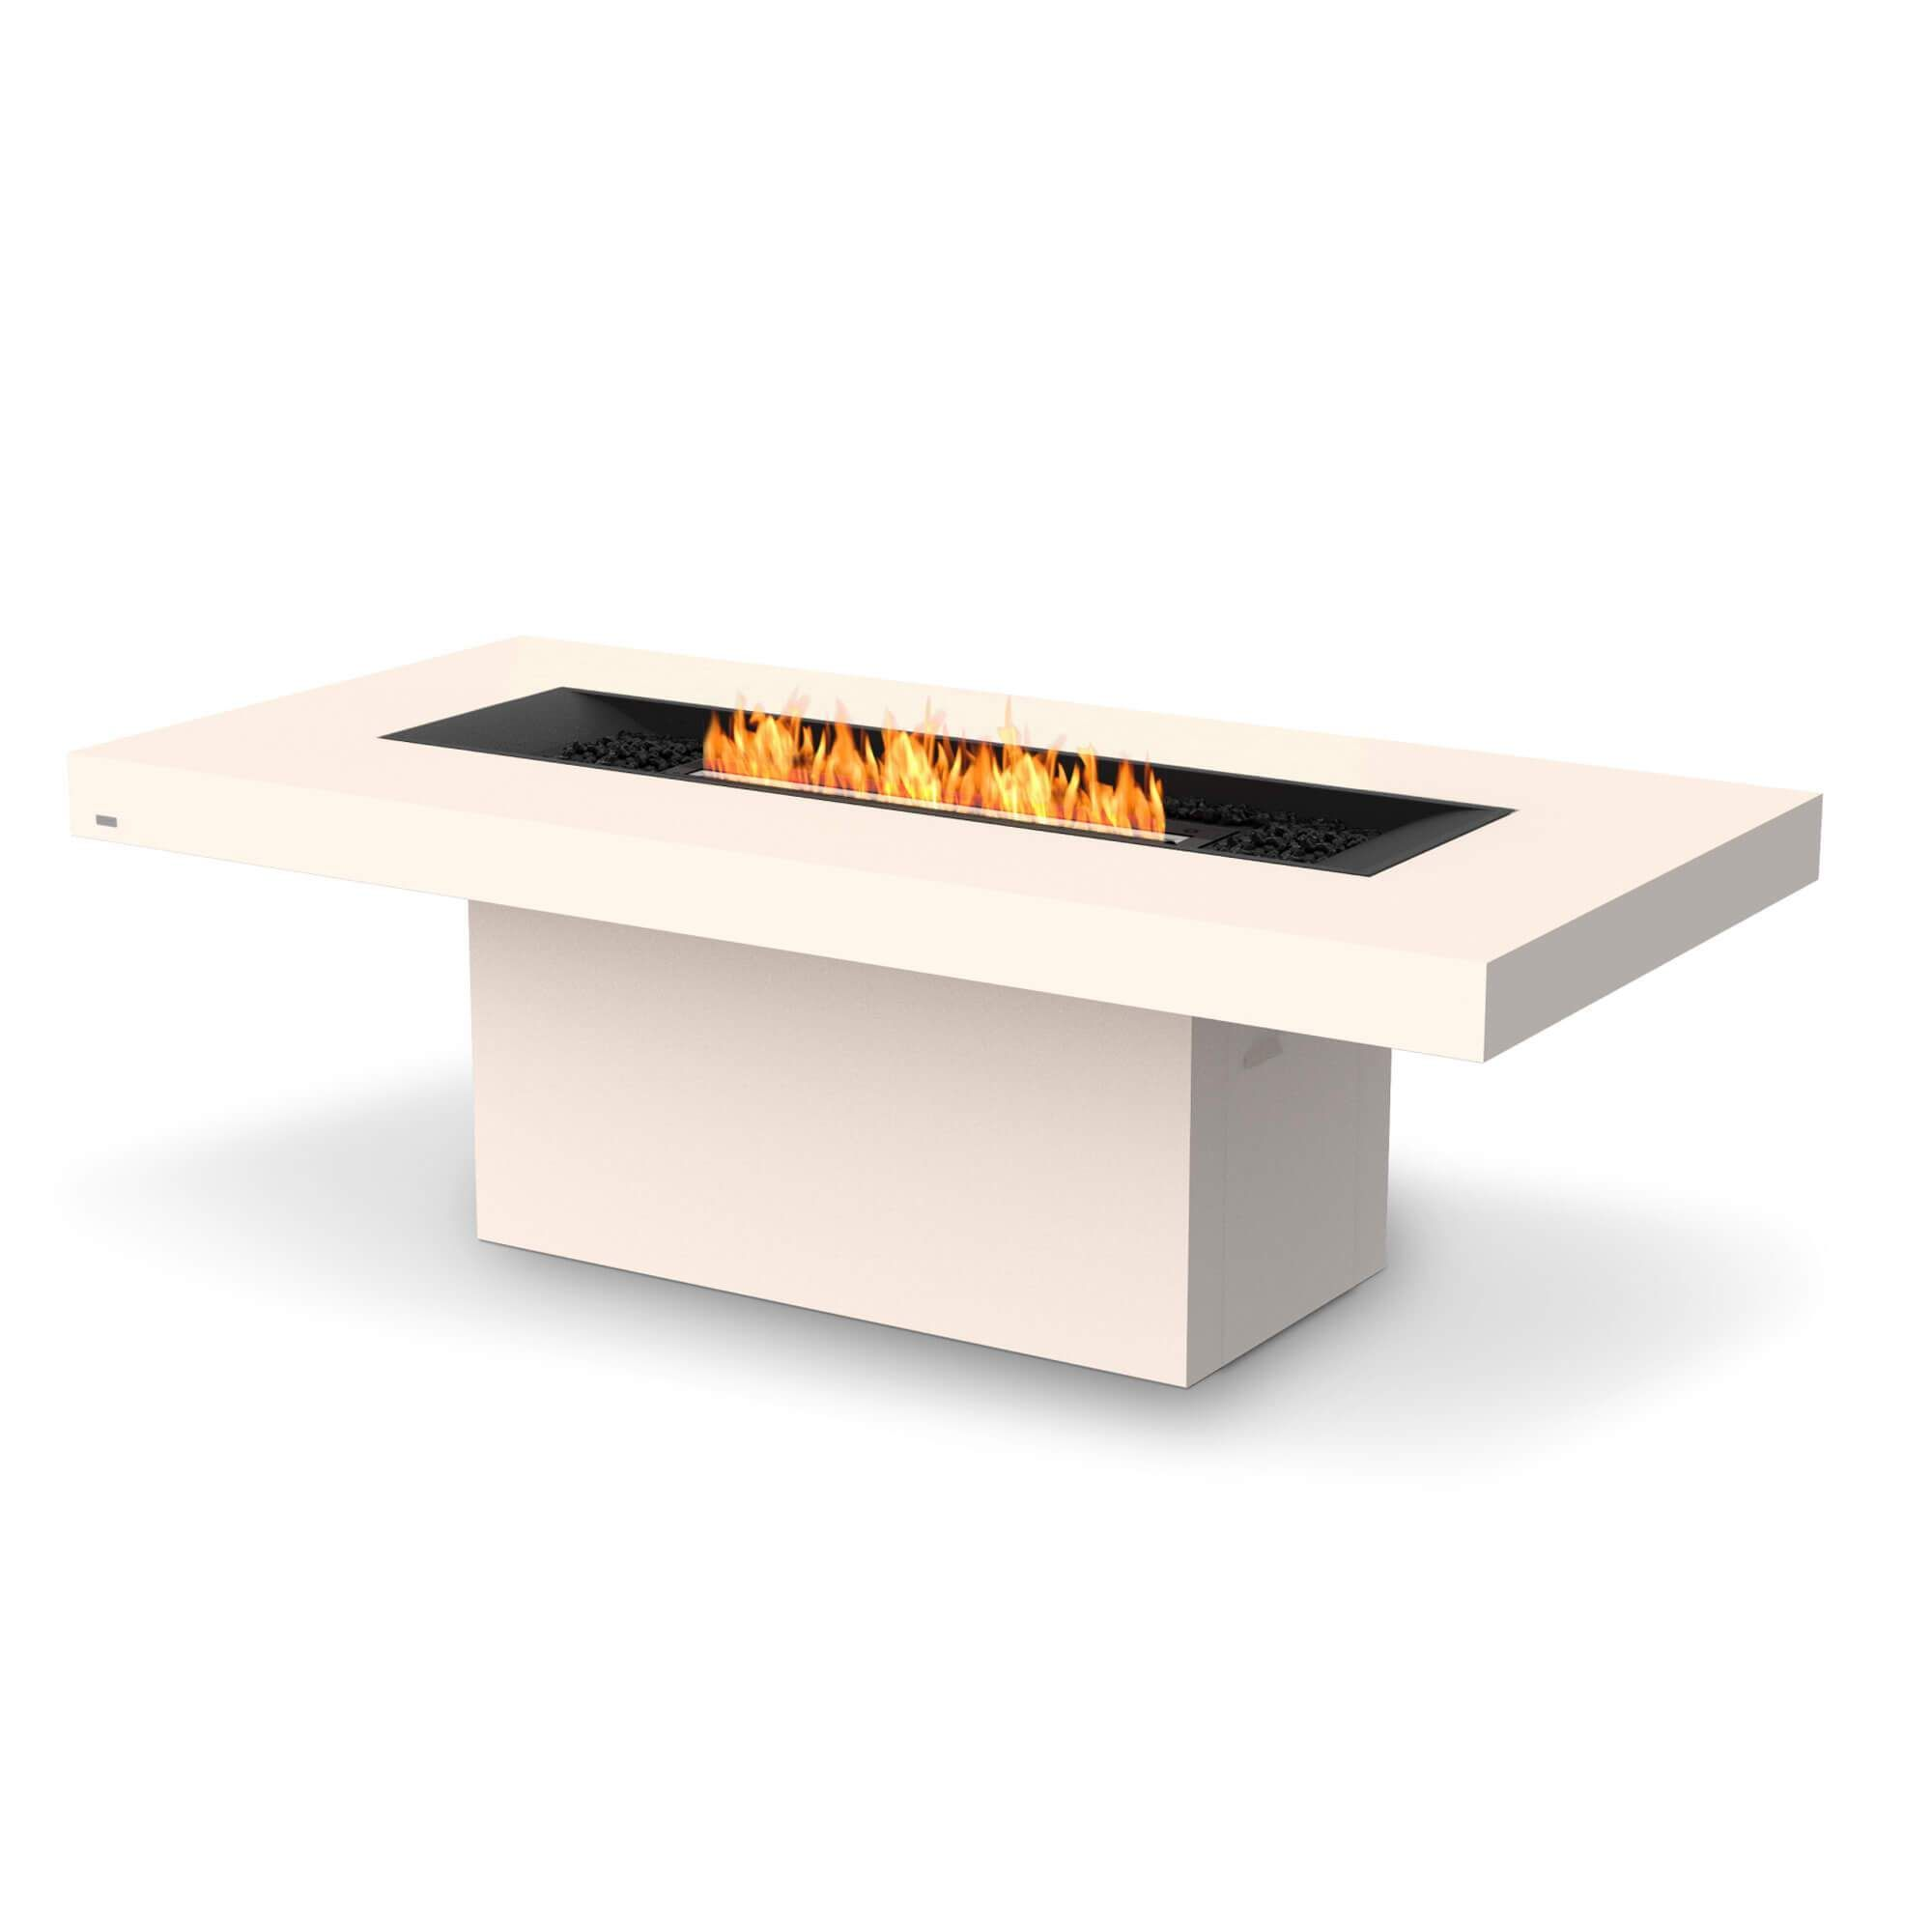 EcoSmart Fire Gin 90 Dining Bioethanol Fire Pit Table - Outdoor / Bone / Black